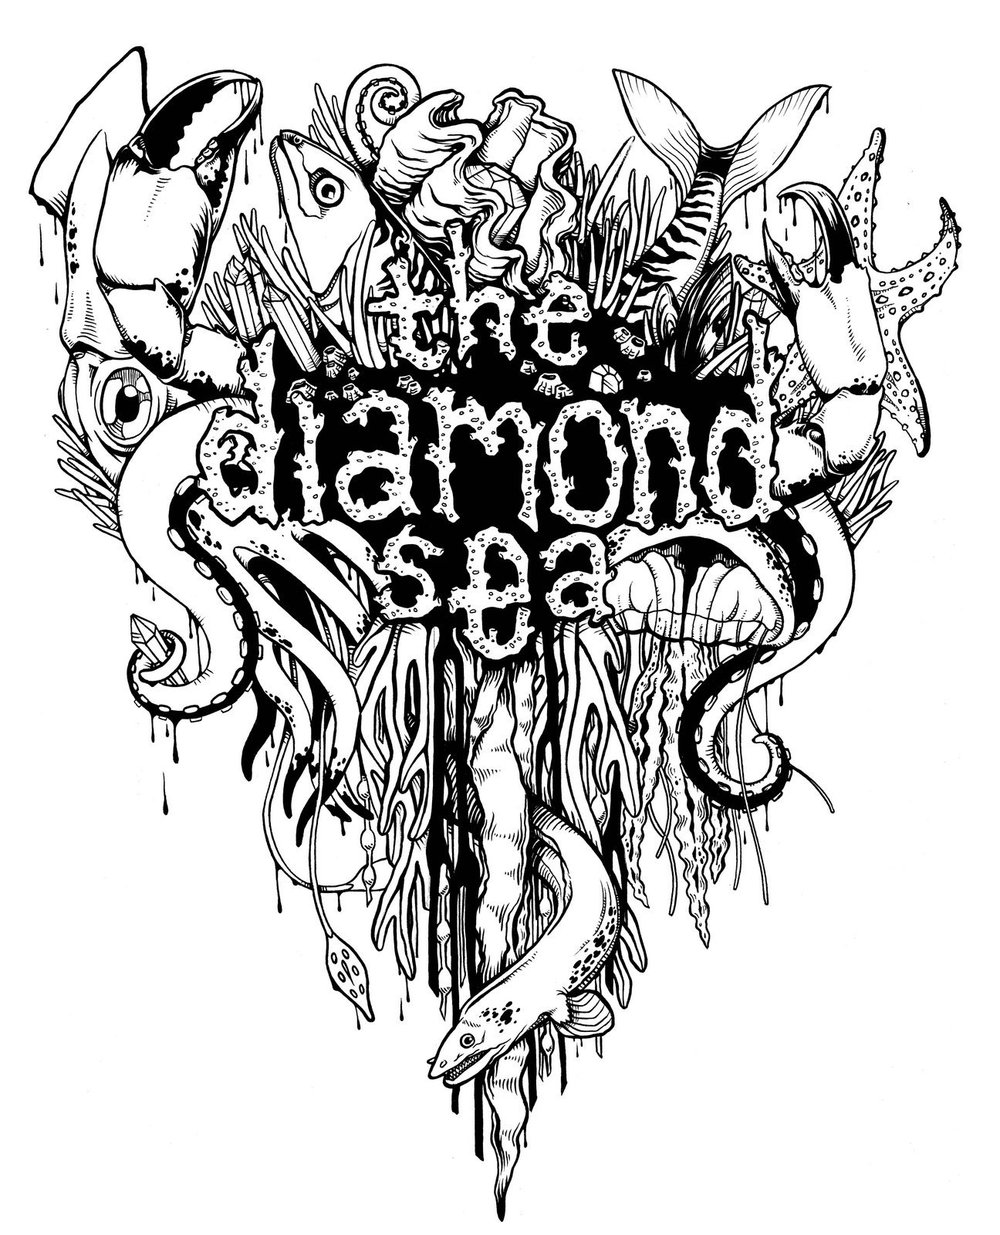 Shirt Design for the Diamond Sea 2012